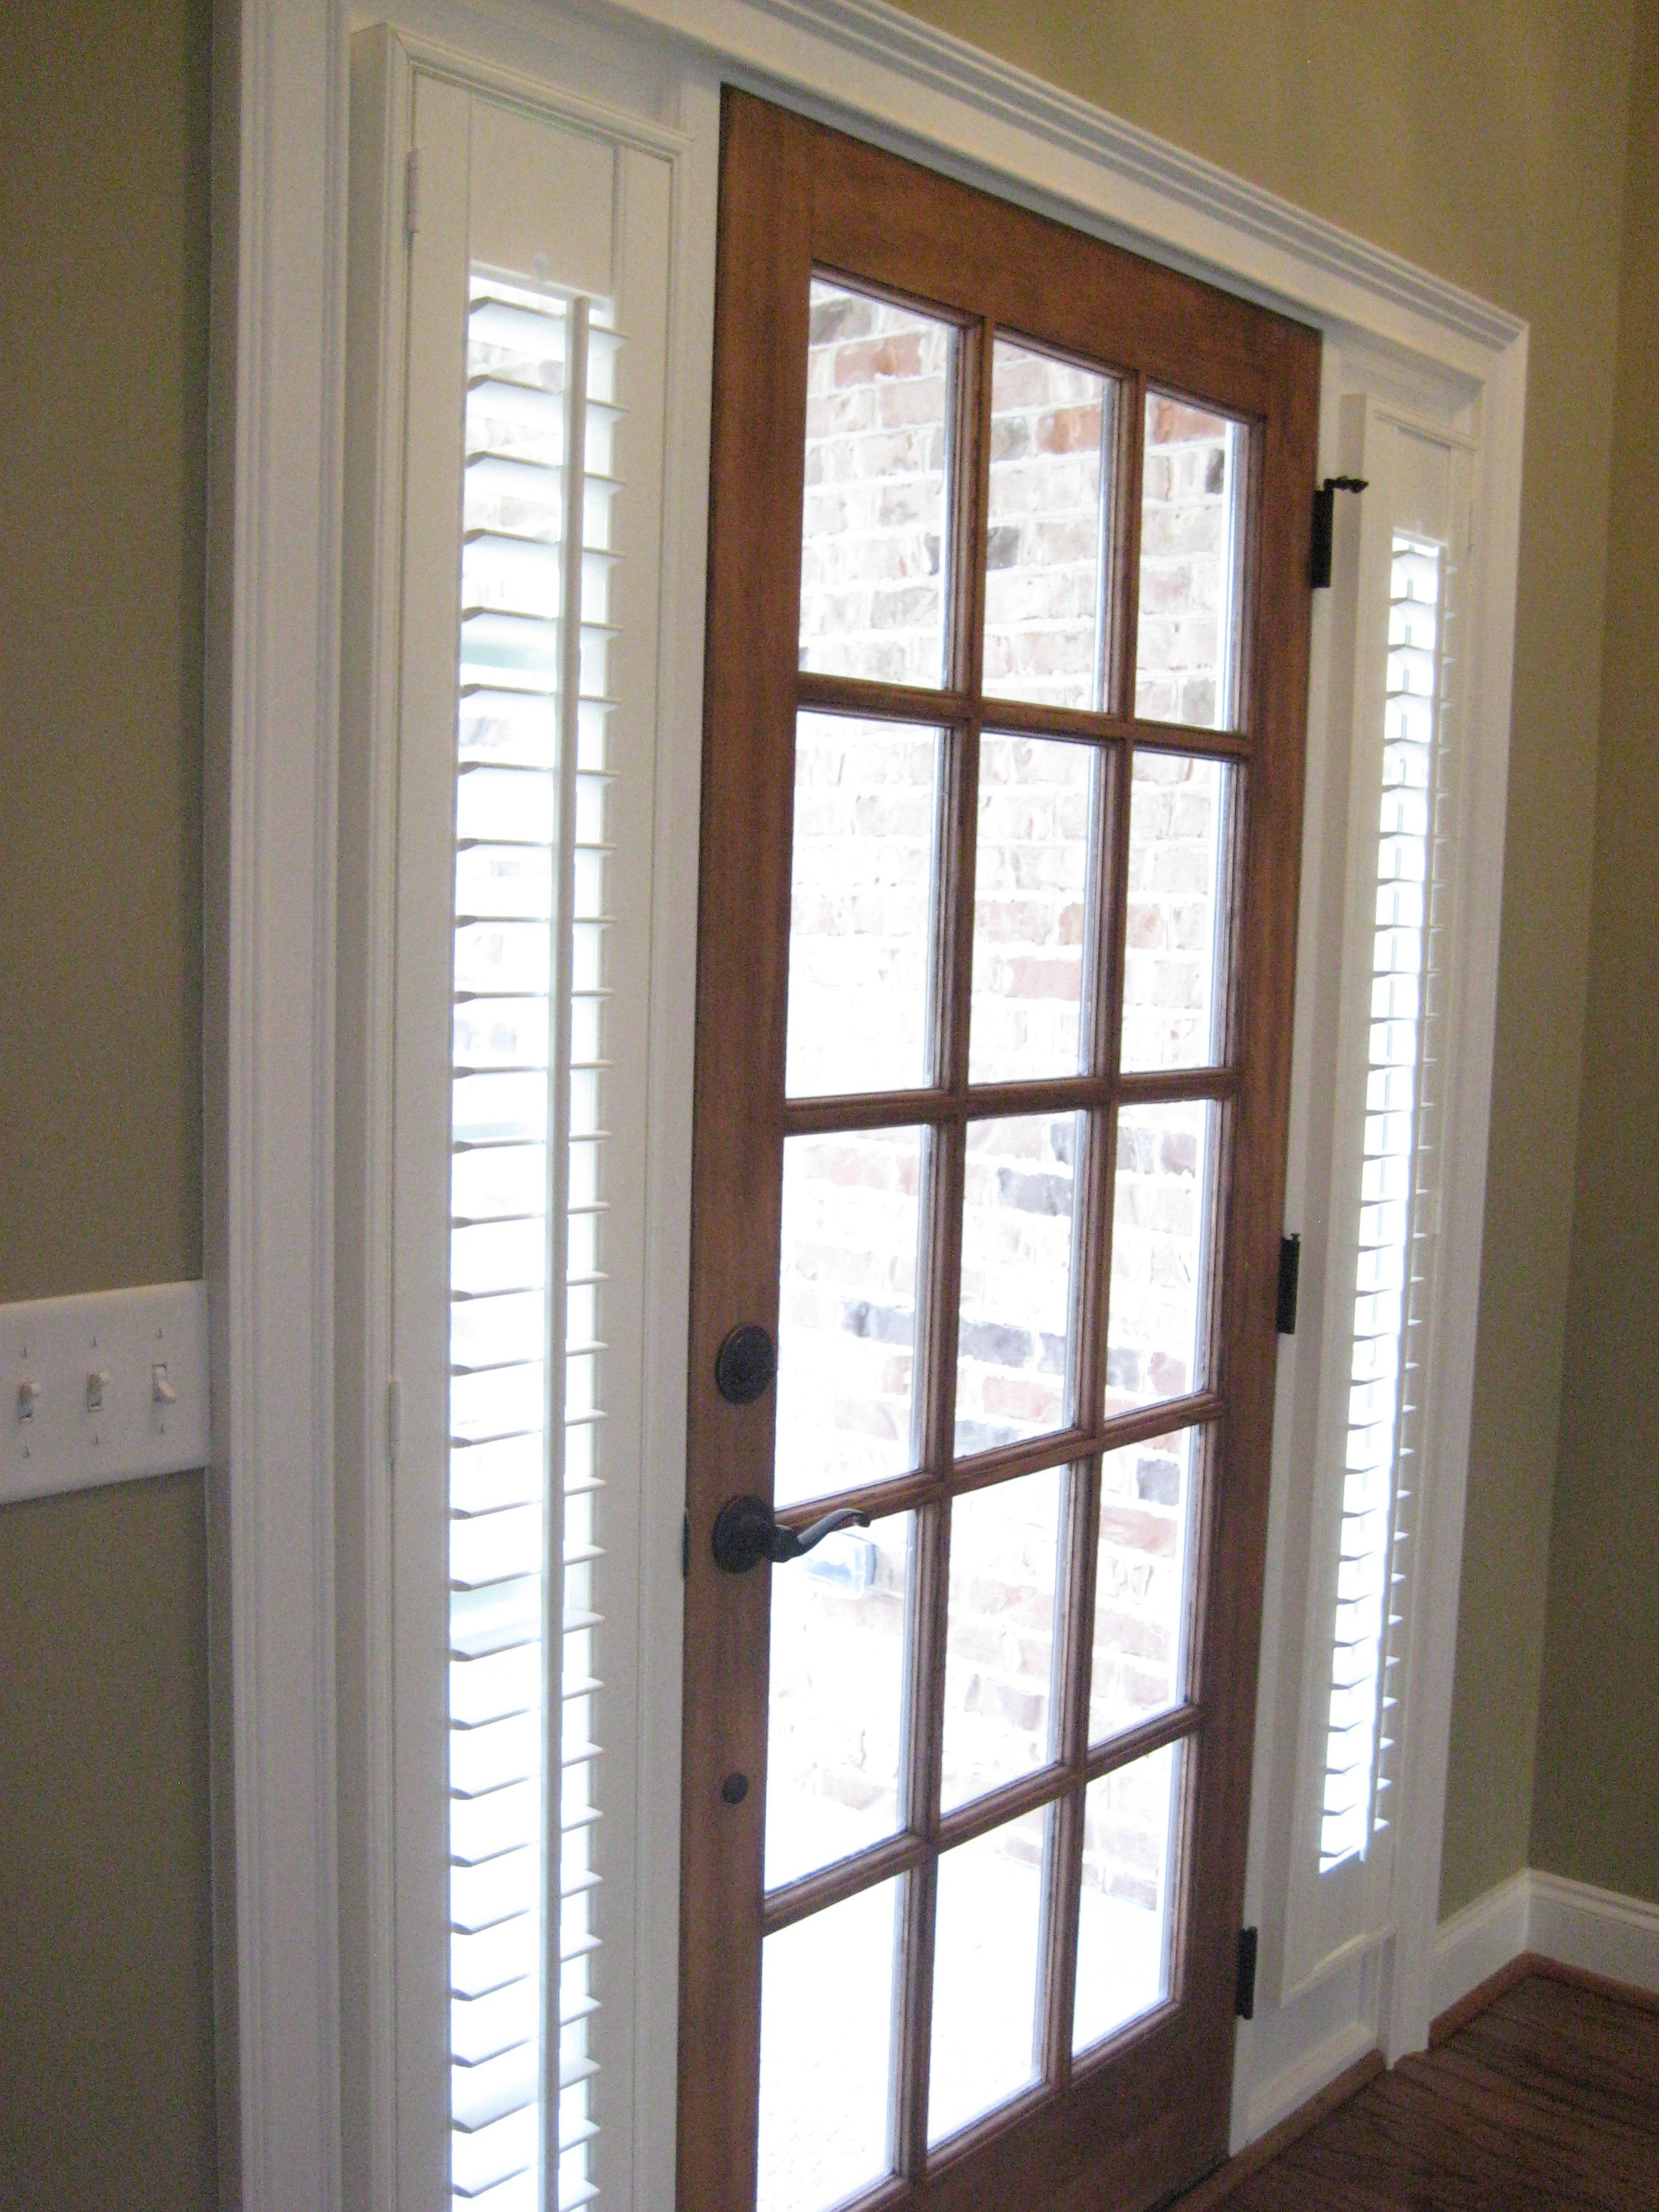 Barn window decor  sidelight blinds idea plantation shutters can be custom made for